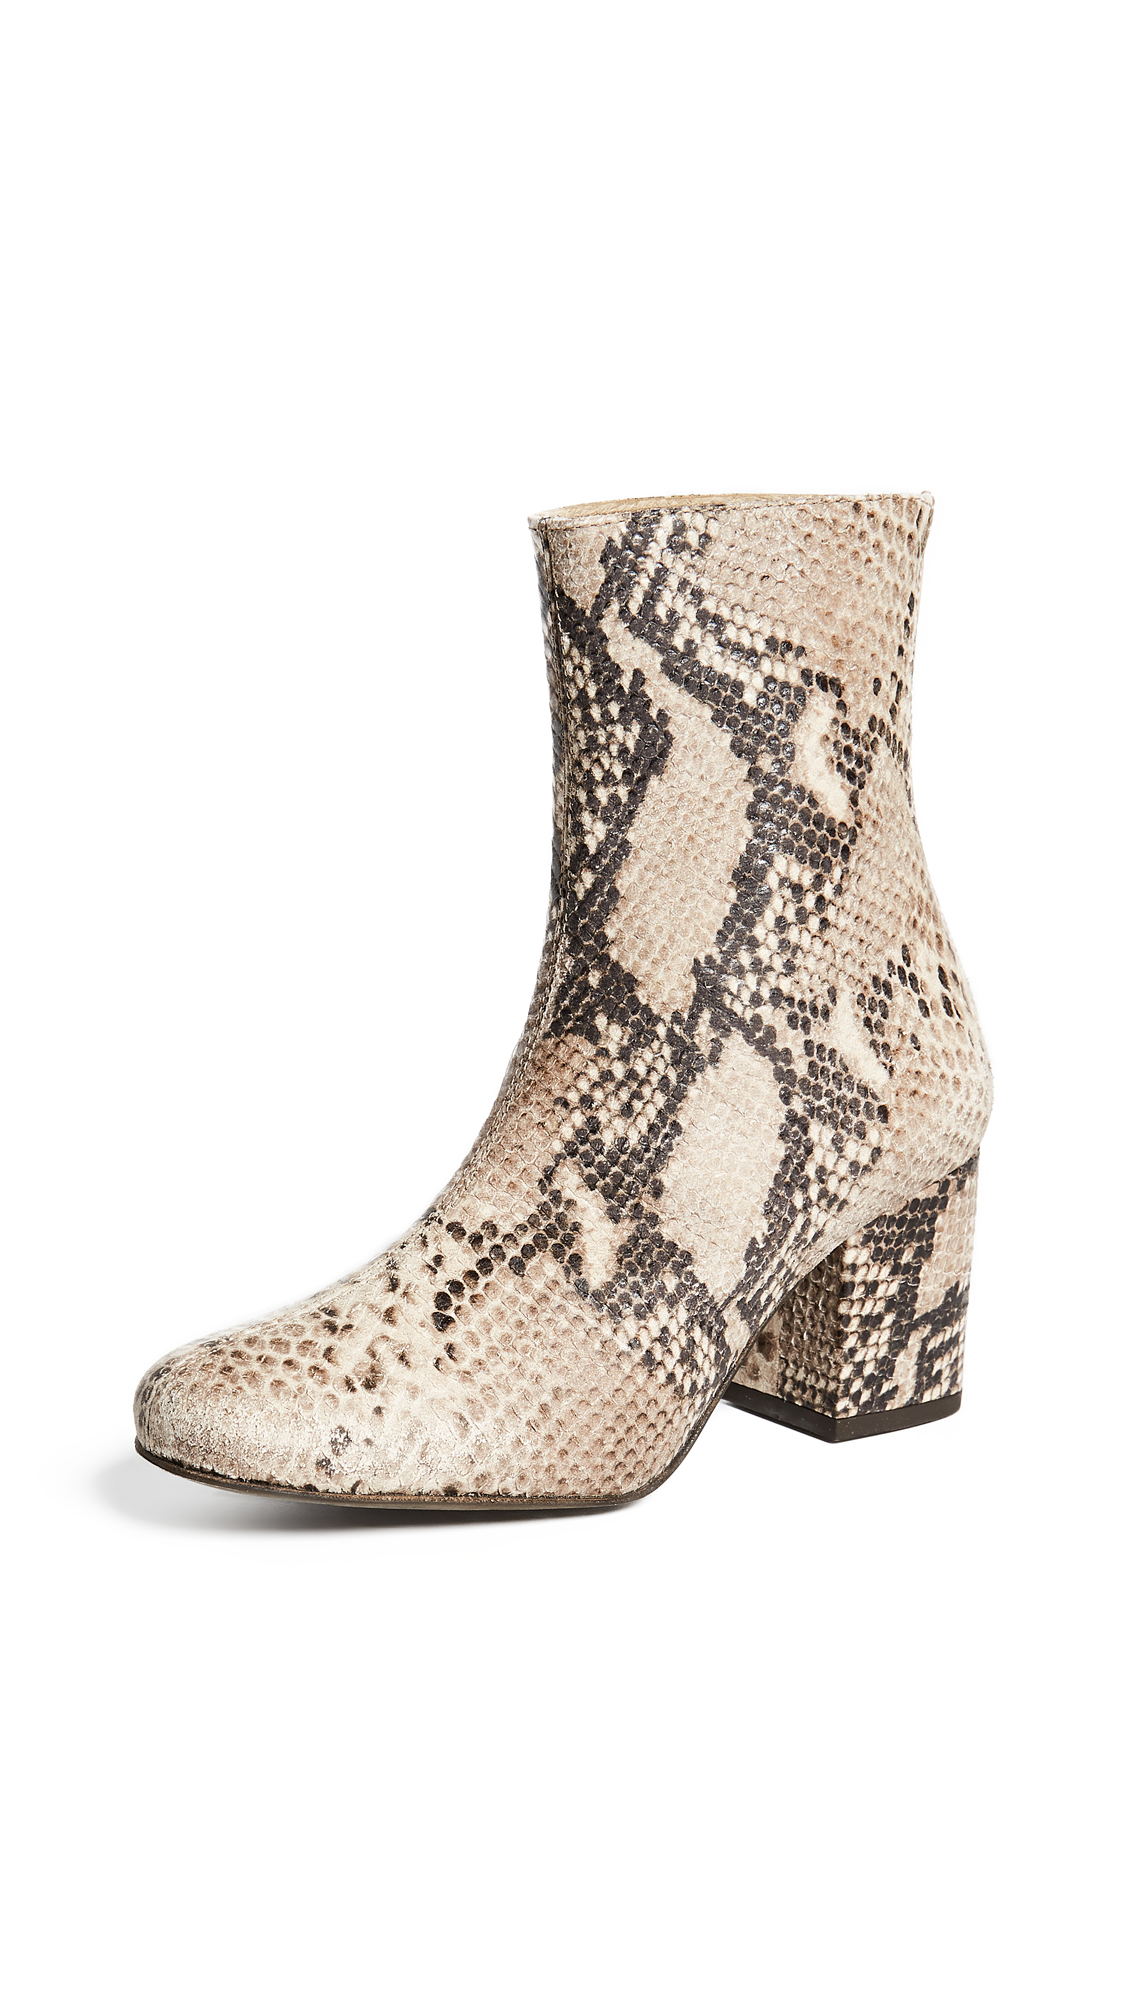 Free People Cecile Ankle Booties - Taupe